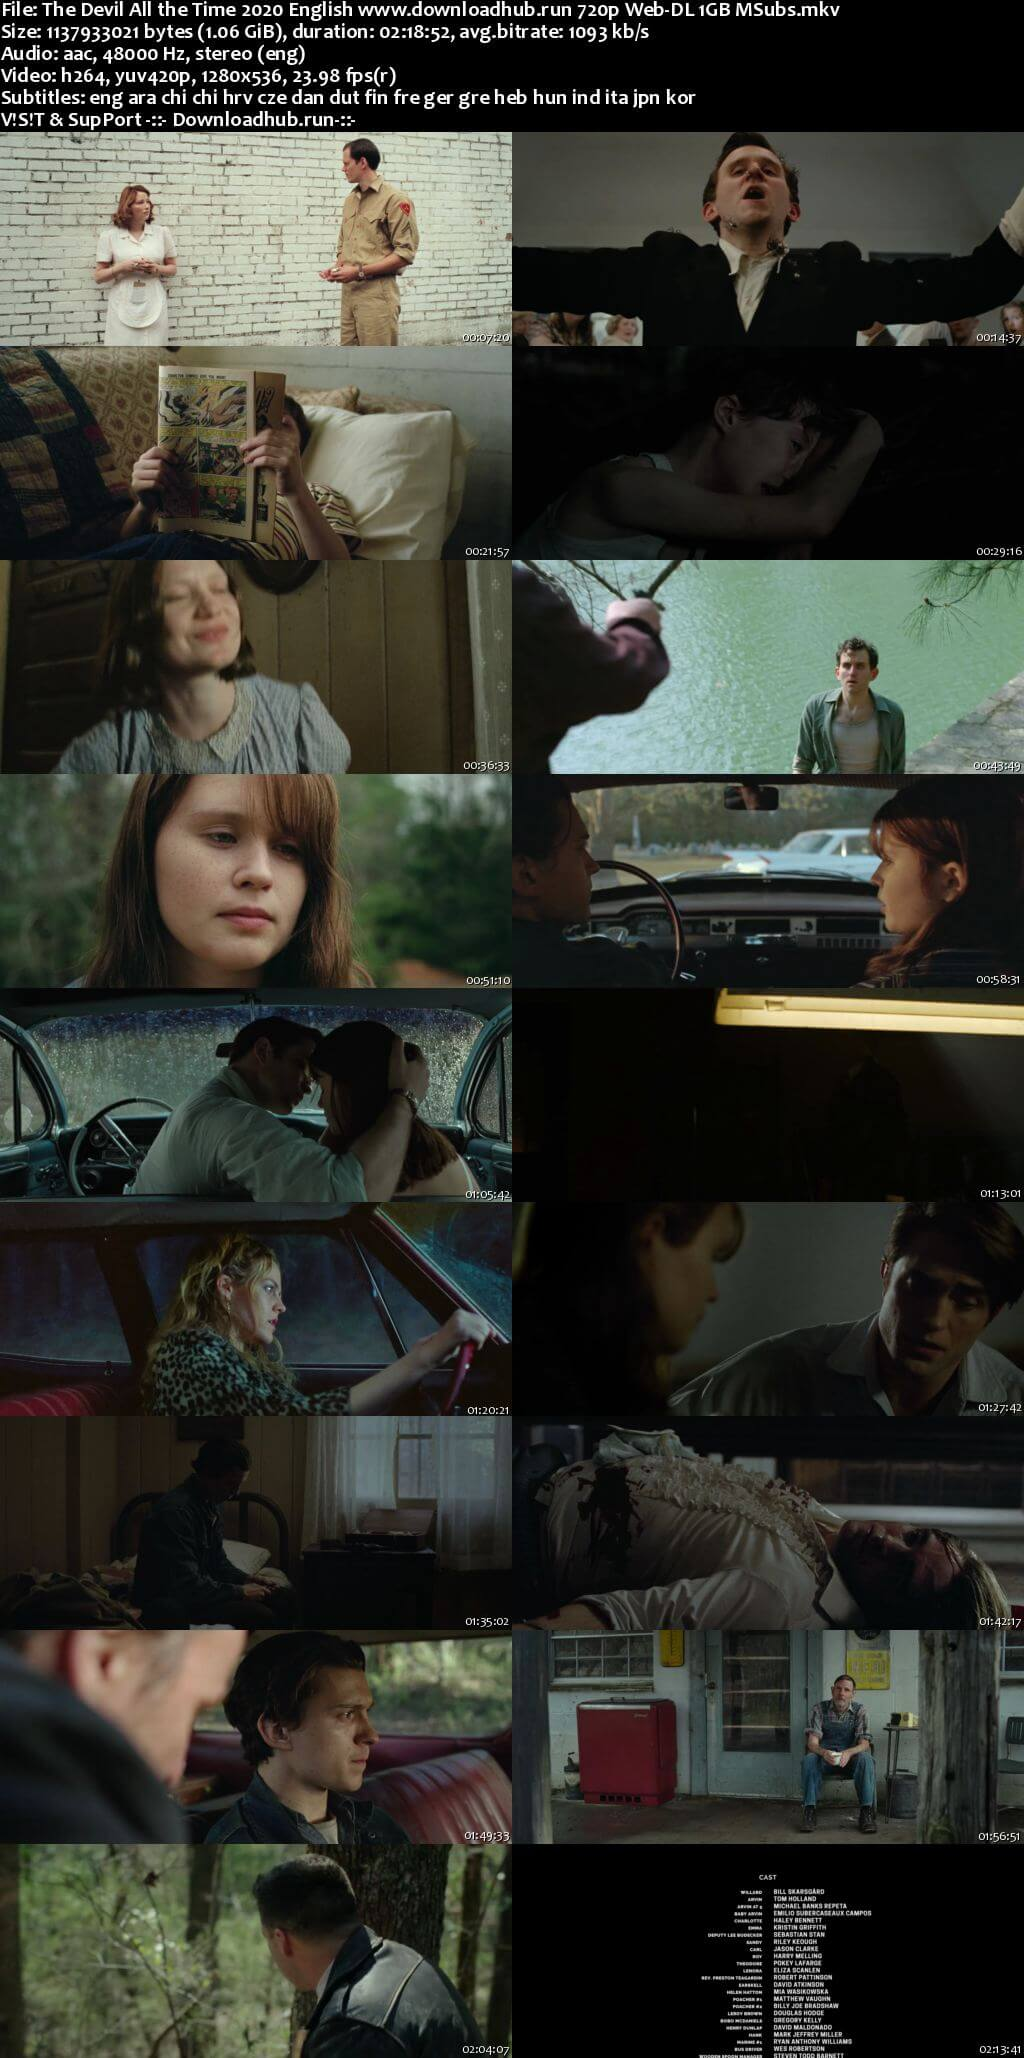 The Devil All the Time 2020 English 720p Web-DL 1GB MSubs